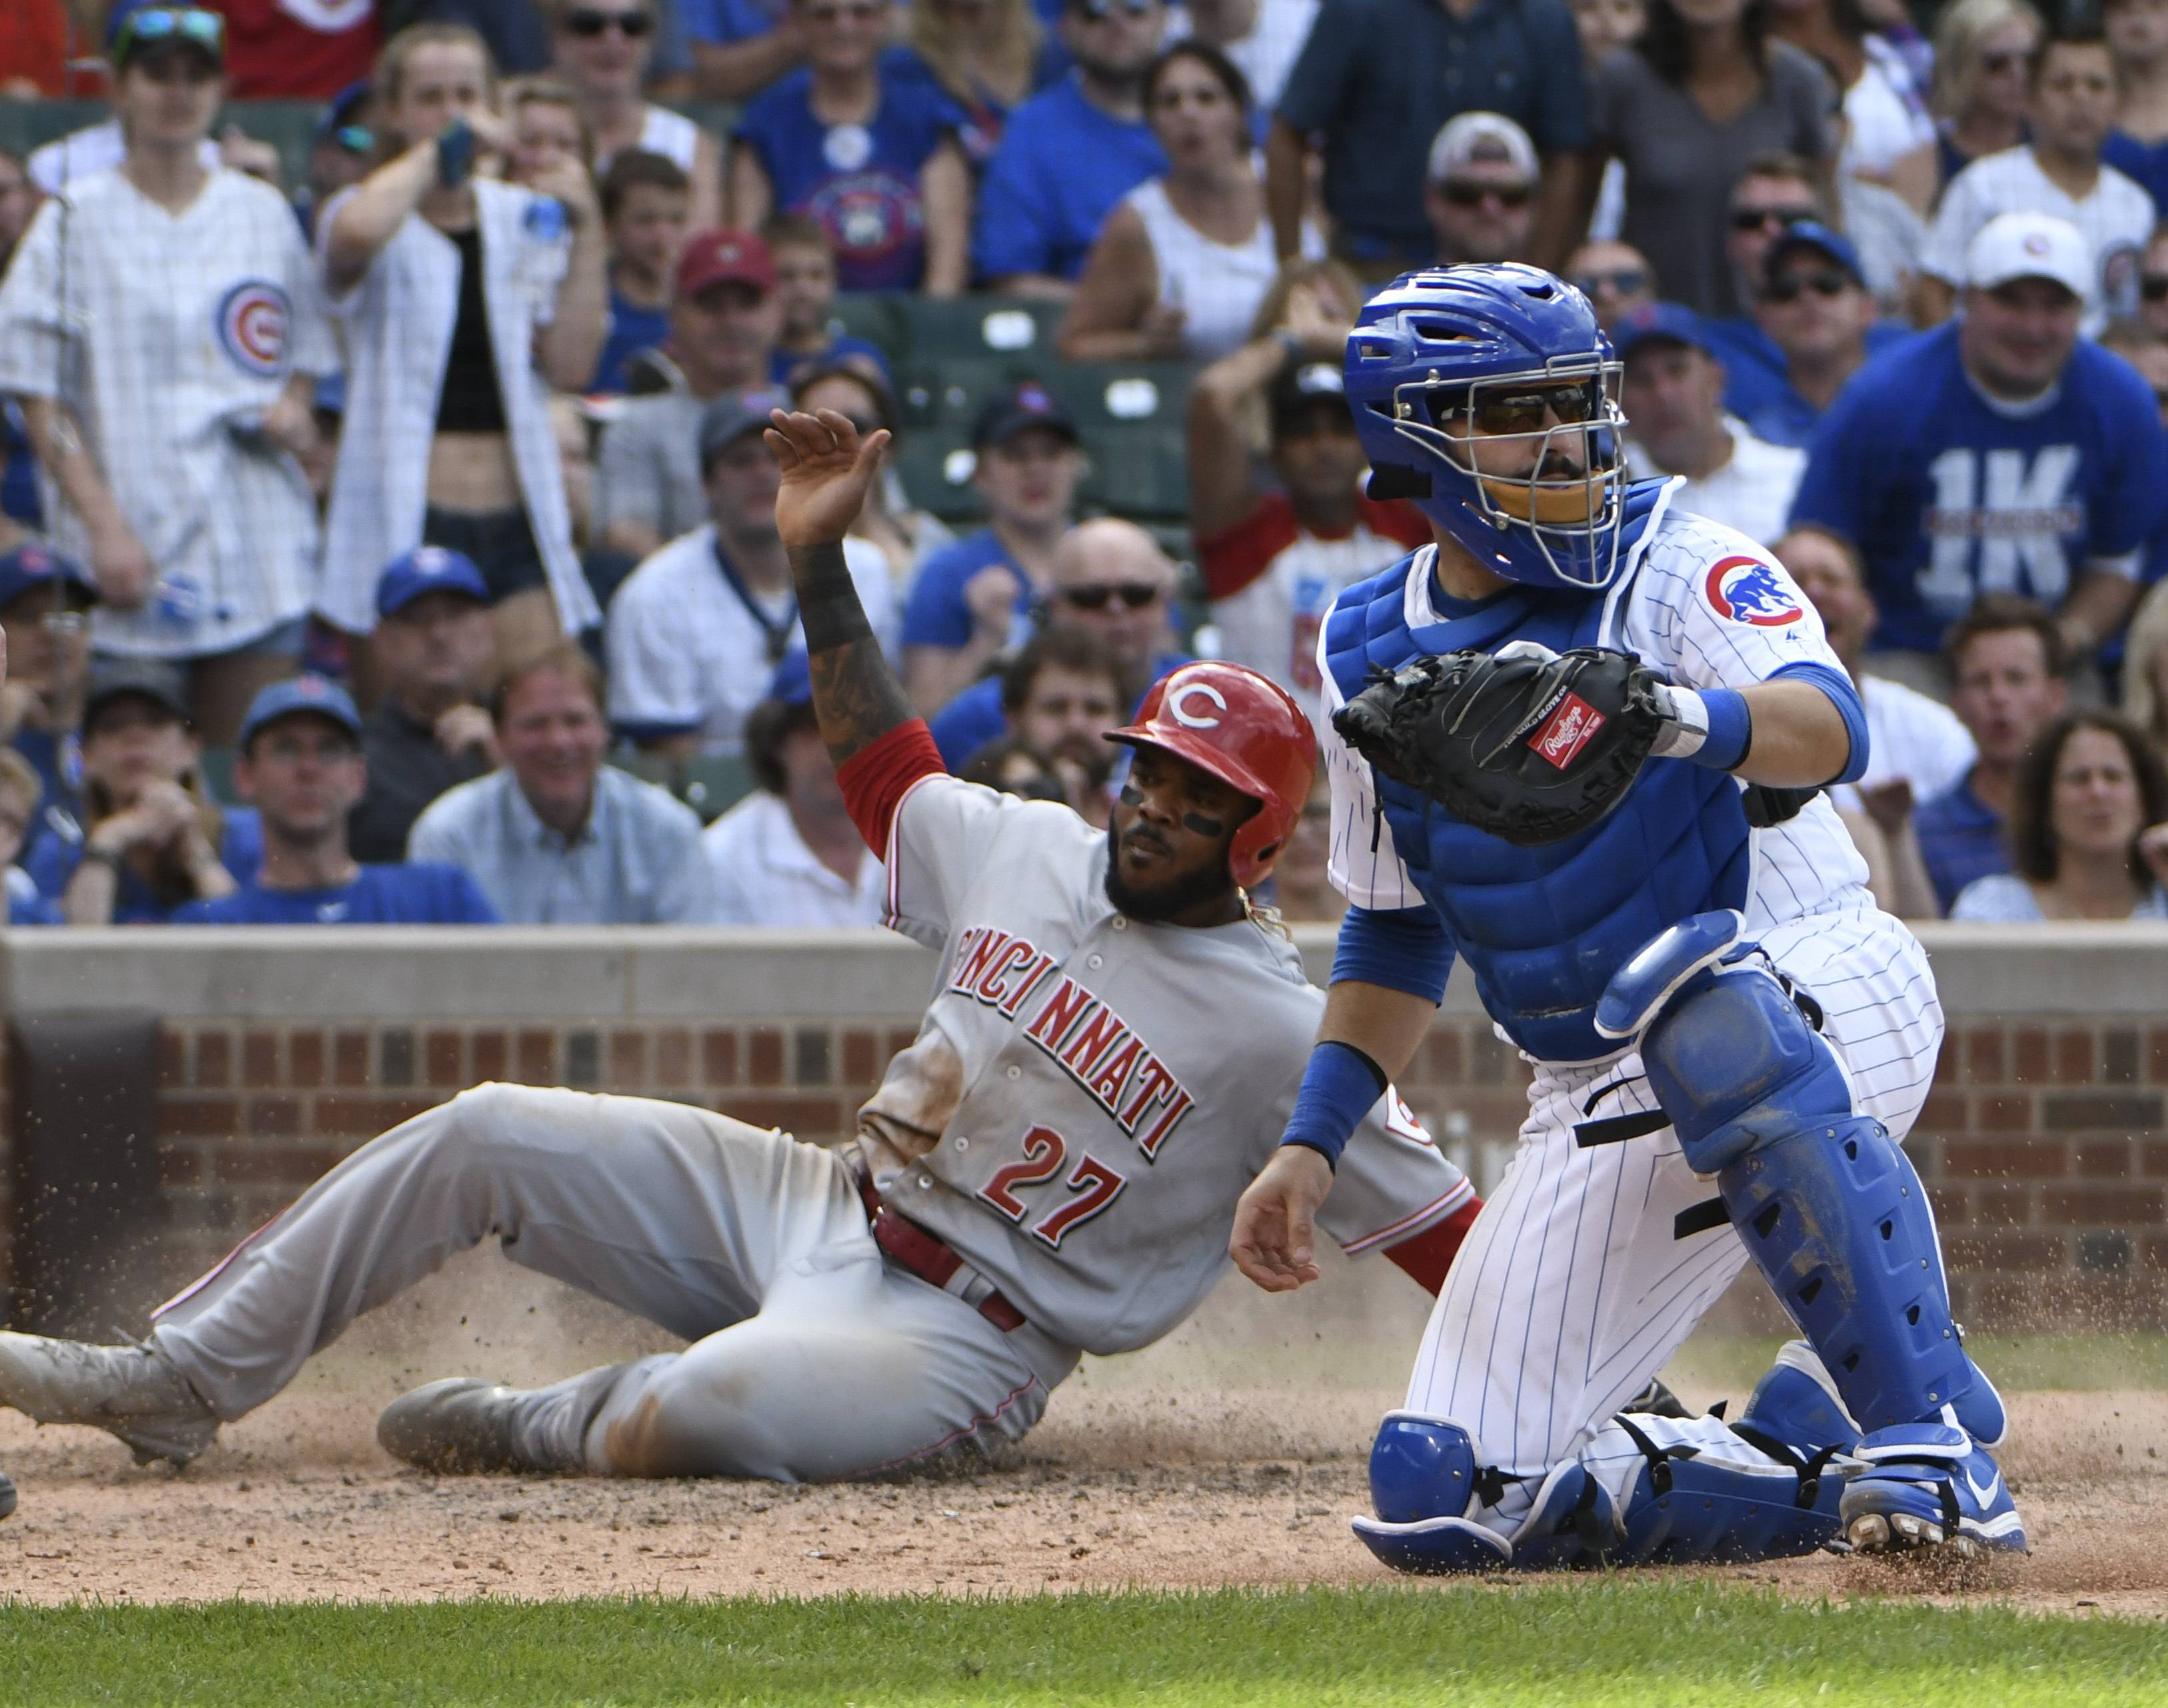 Cincinnati Red's Phillip Ervin (27) is safe at home as Chicago Cubs catcher Alex Avila (13) waits for the throw during the ninth inning of a baseball game, Thursday, Aug. 17, 2017, in Chicago. (AP Photo/David Banks)